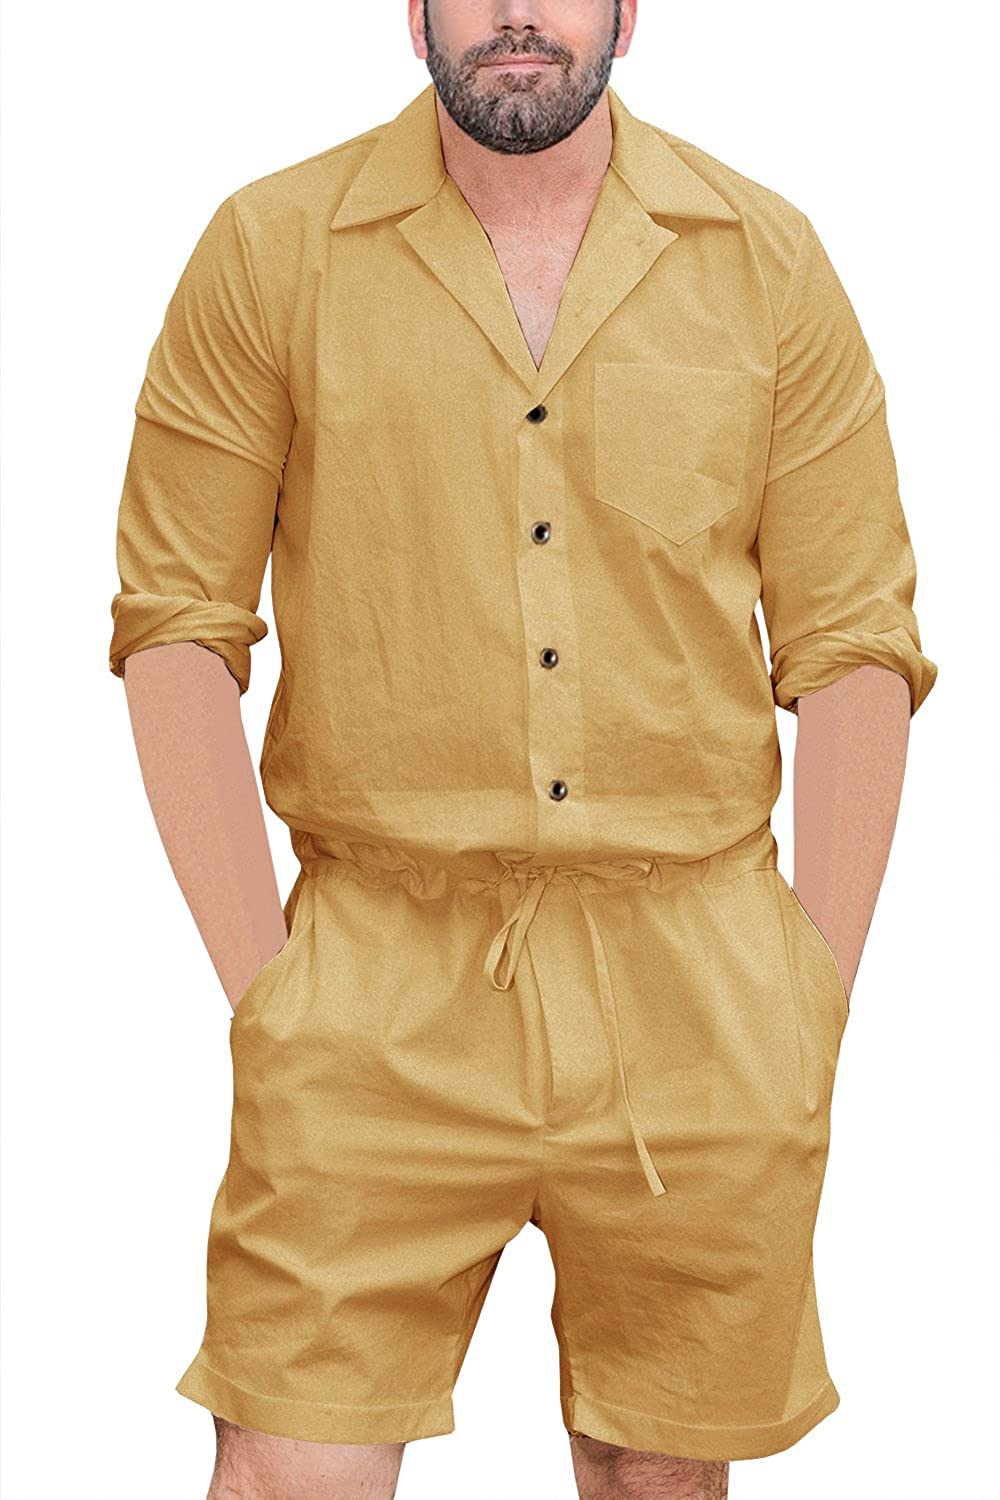 Makkrom Mens Rompers Jumpsuits One Piece Long Sleeve Shirt Drawstring Shorts Casual Plain Coverall with Pockets